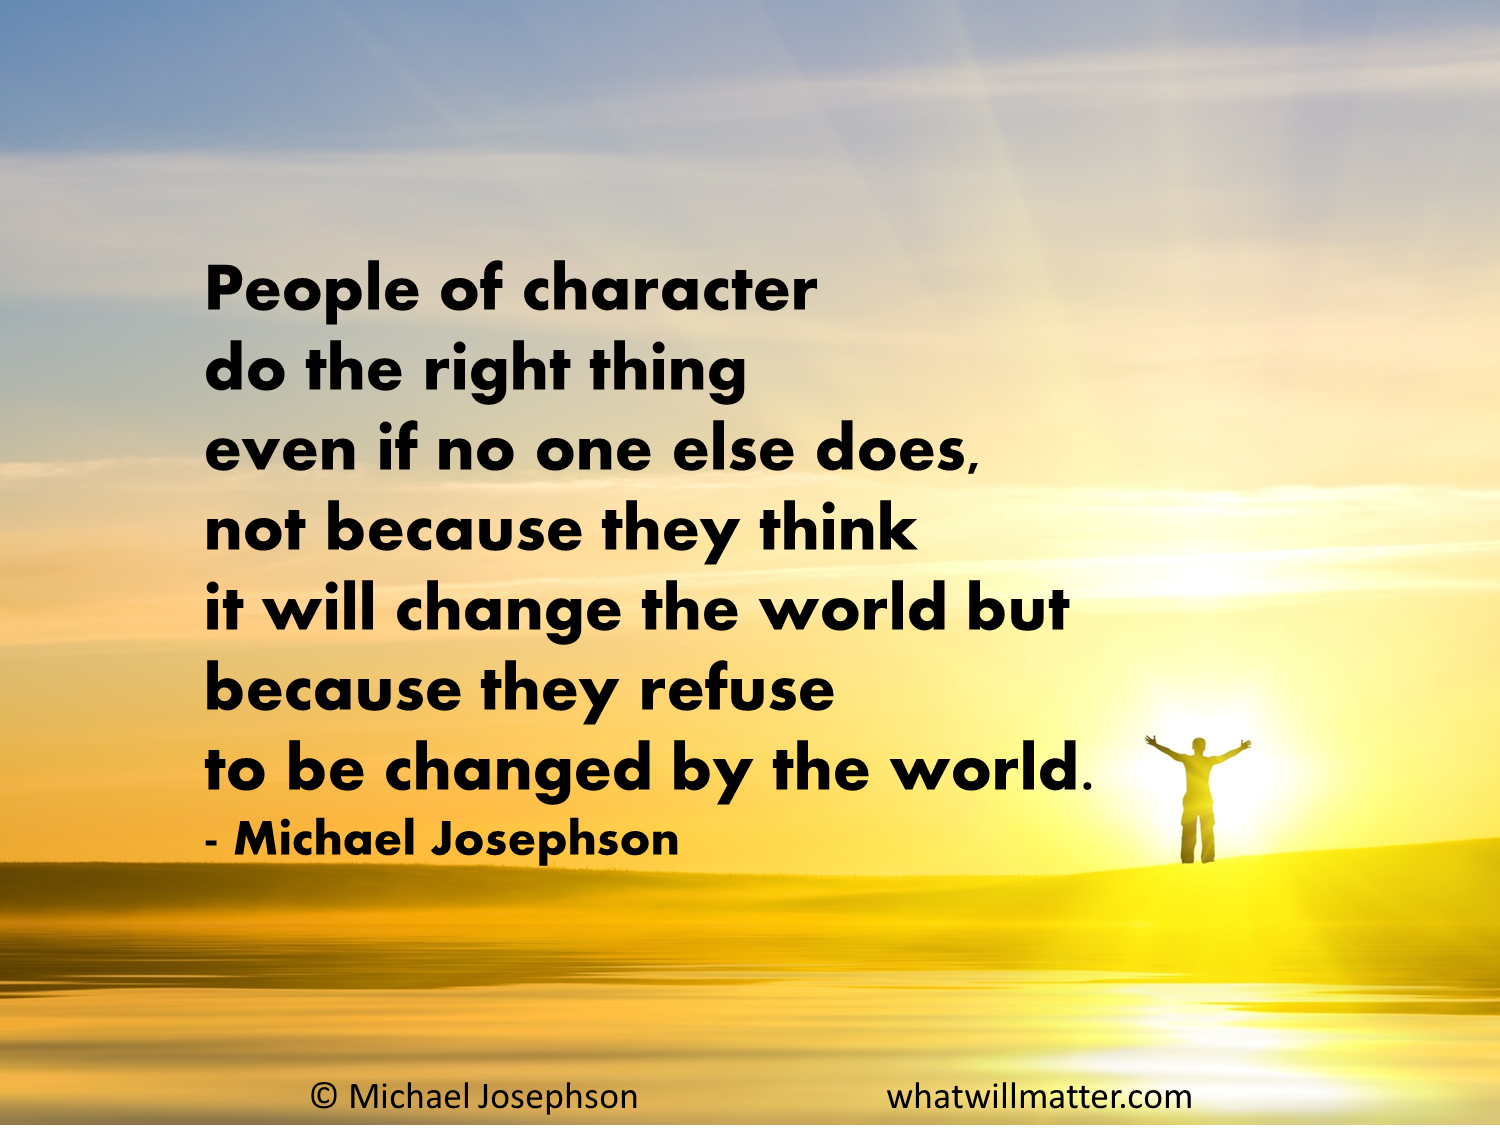 People of character do the right thing even if no one else does, not because they think it will change the world but because they refuse to be changed ... Michael Josephson